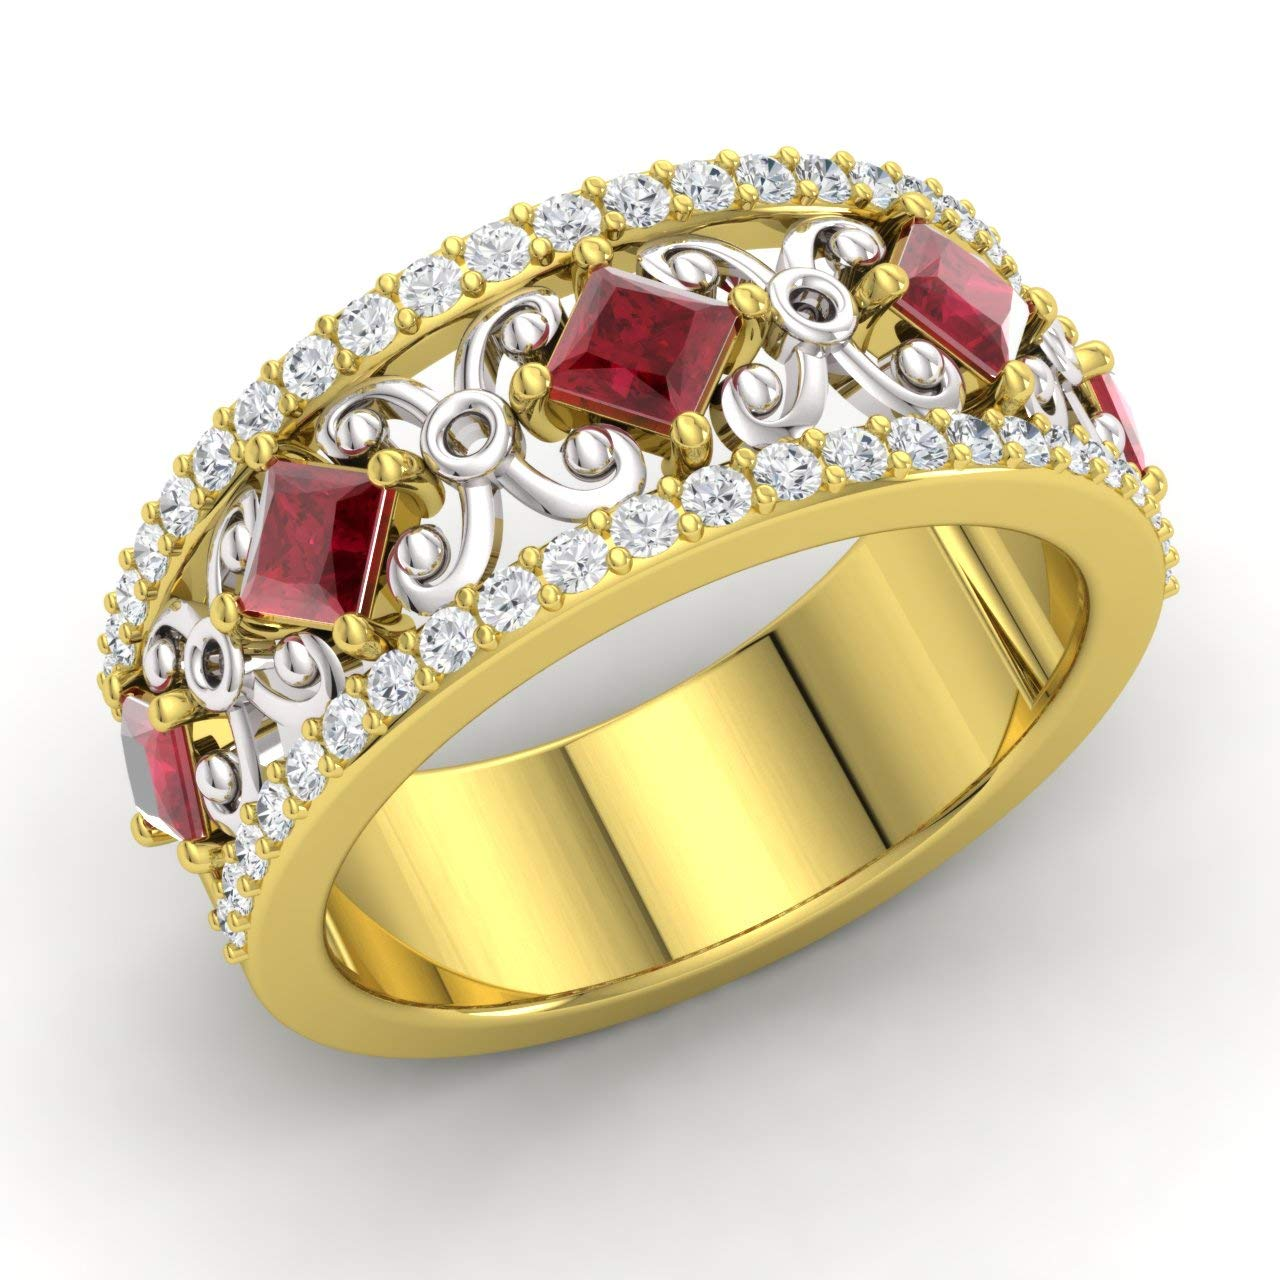 Diamondere Natural And Certified Princess Cut Ruby Diamond Wedding Ring In 10k Yellow Gold 162 Carat Half Eternity Stackable Band For Women: Princess Cut Ruby Diamond Wedding Ring At Websimilar.org